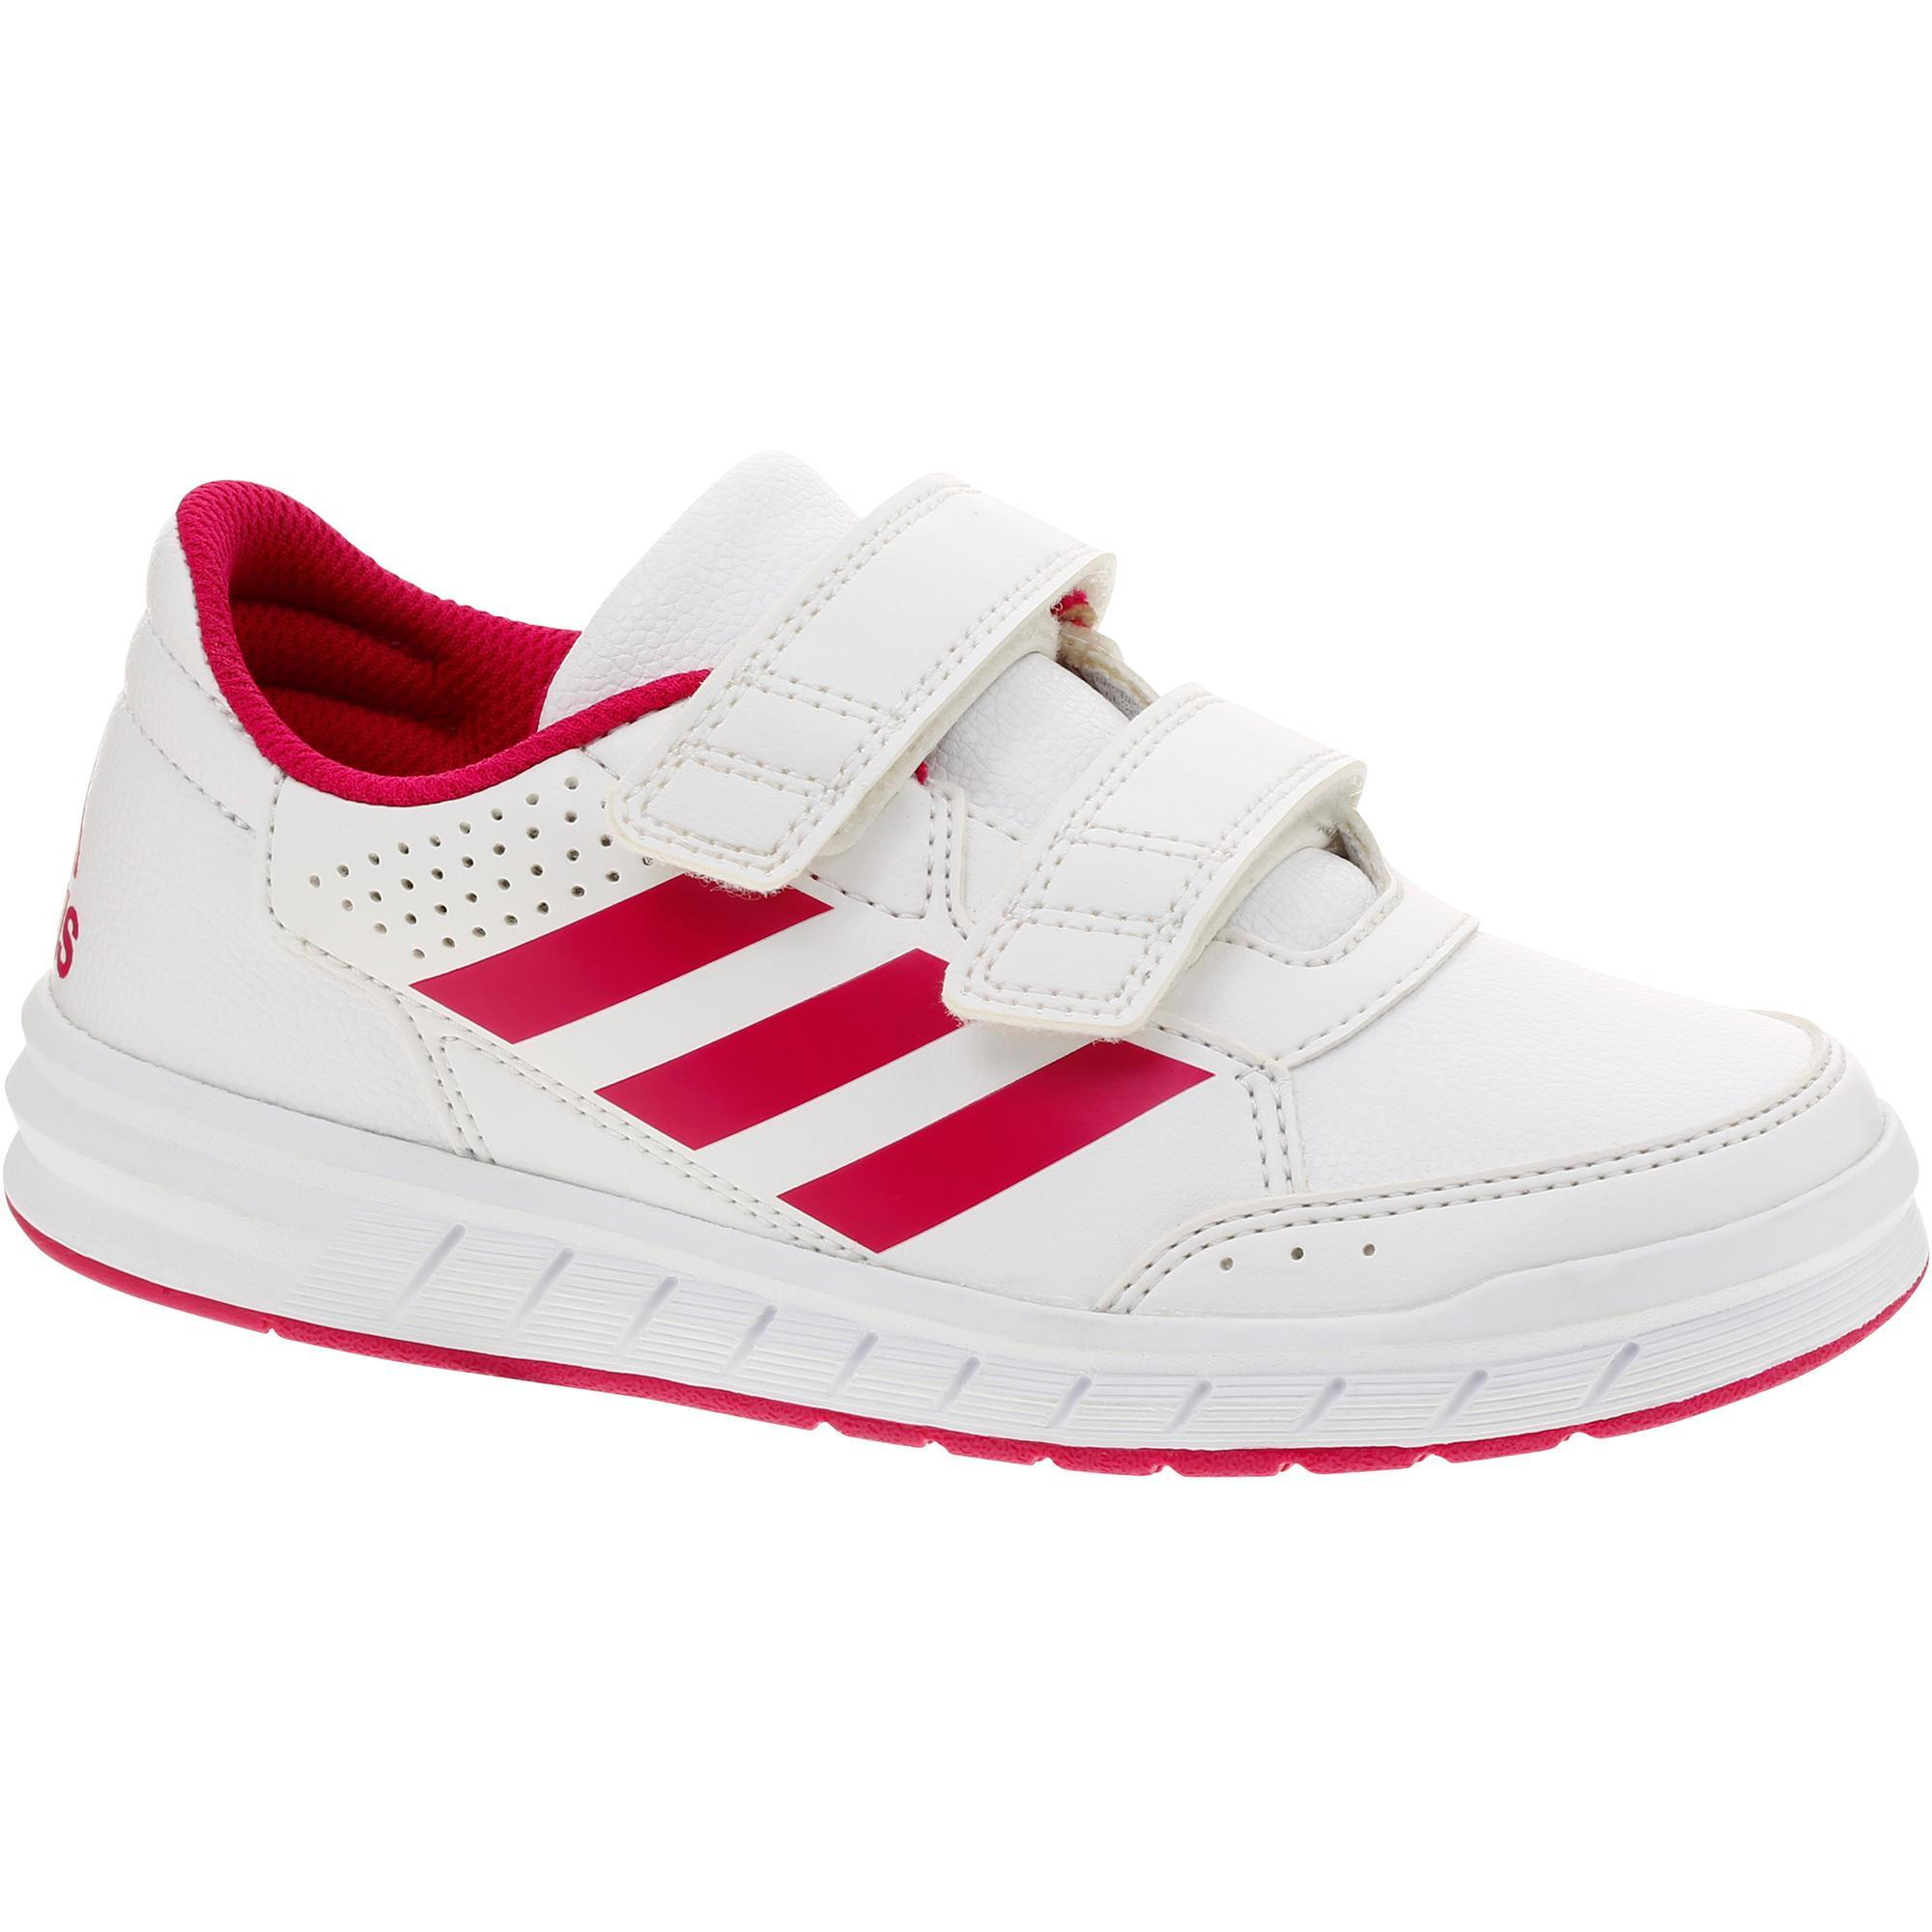 Nabaiji Chaussures Blanches Pour Les Hommes bJihHZa